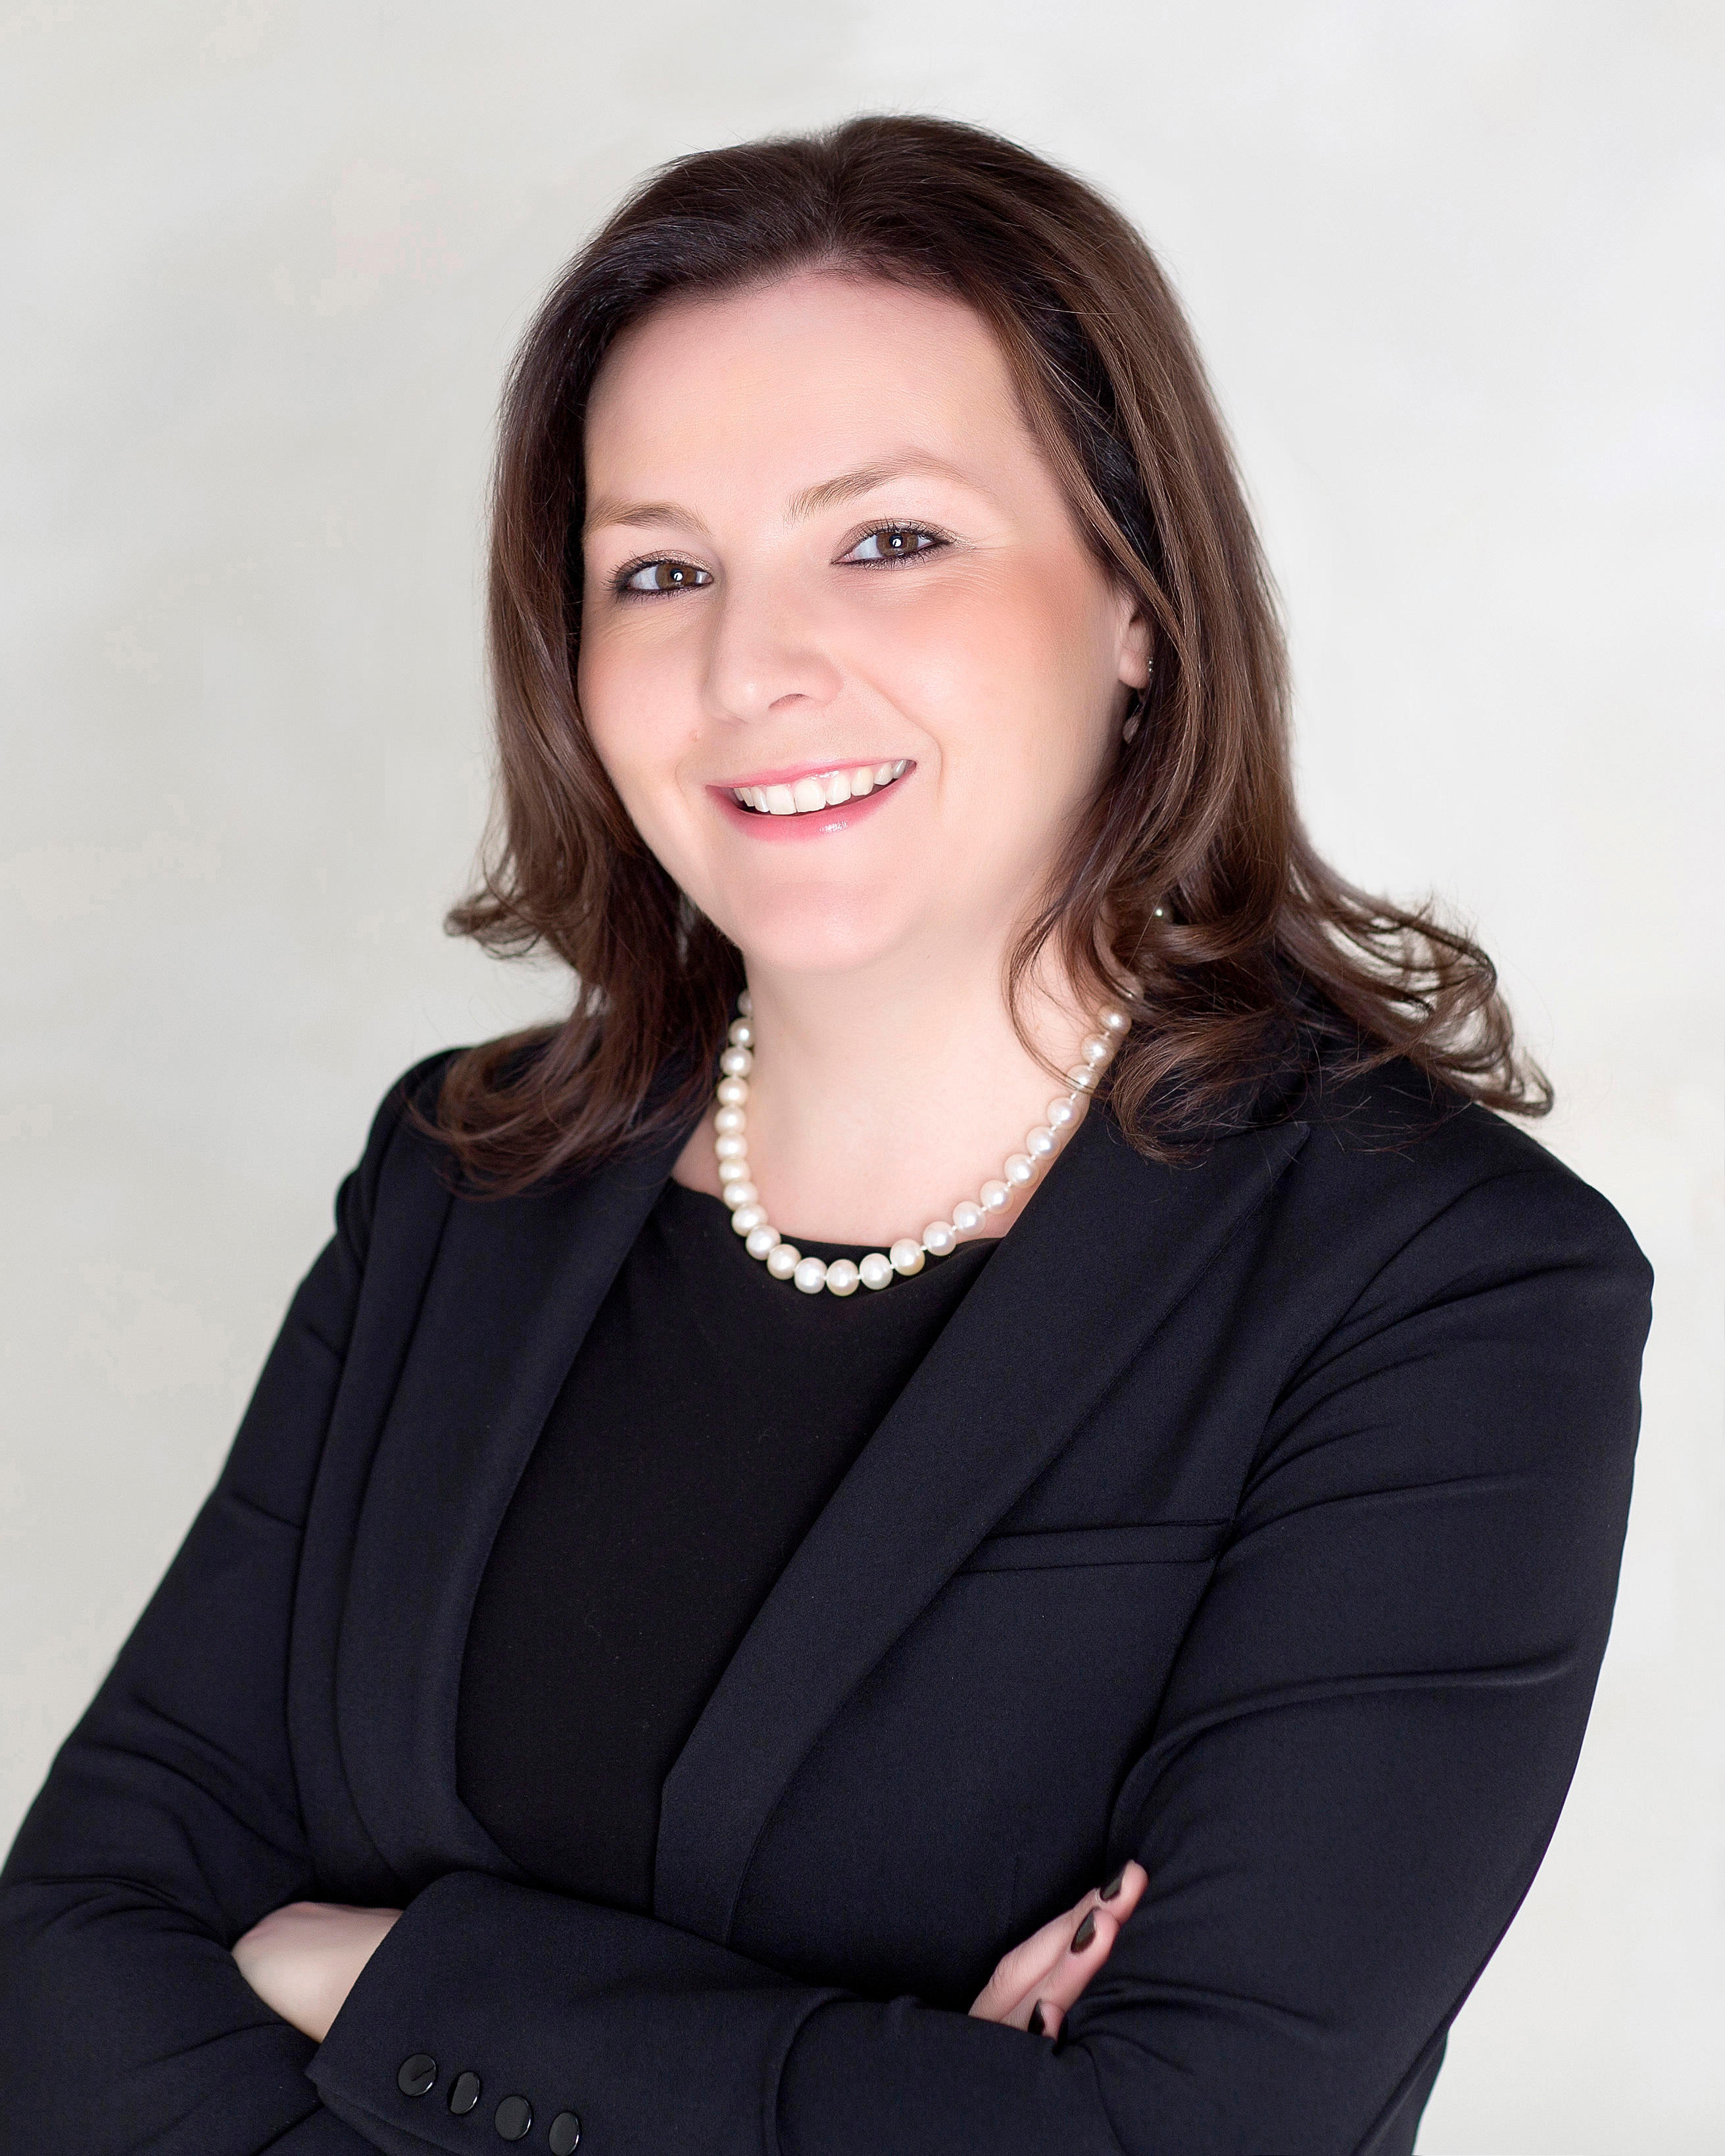 Britt Burner joined the firm in March 2014. Since that time, she has been the driving force behind our Manhattan office. Immediately after taking the bar, Britt started working at Dewey & LeBoeuf LLP